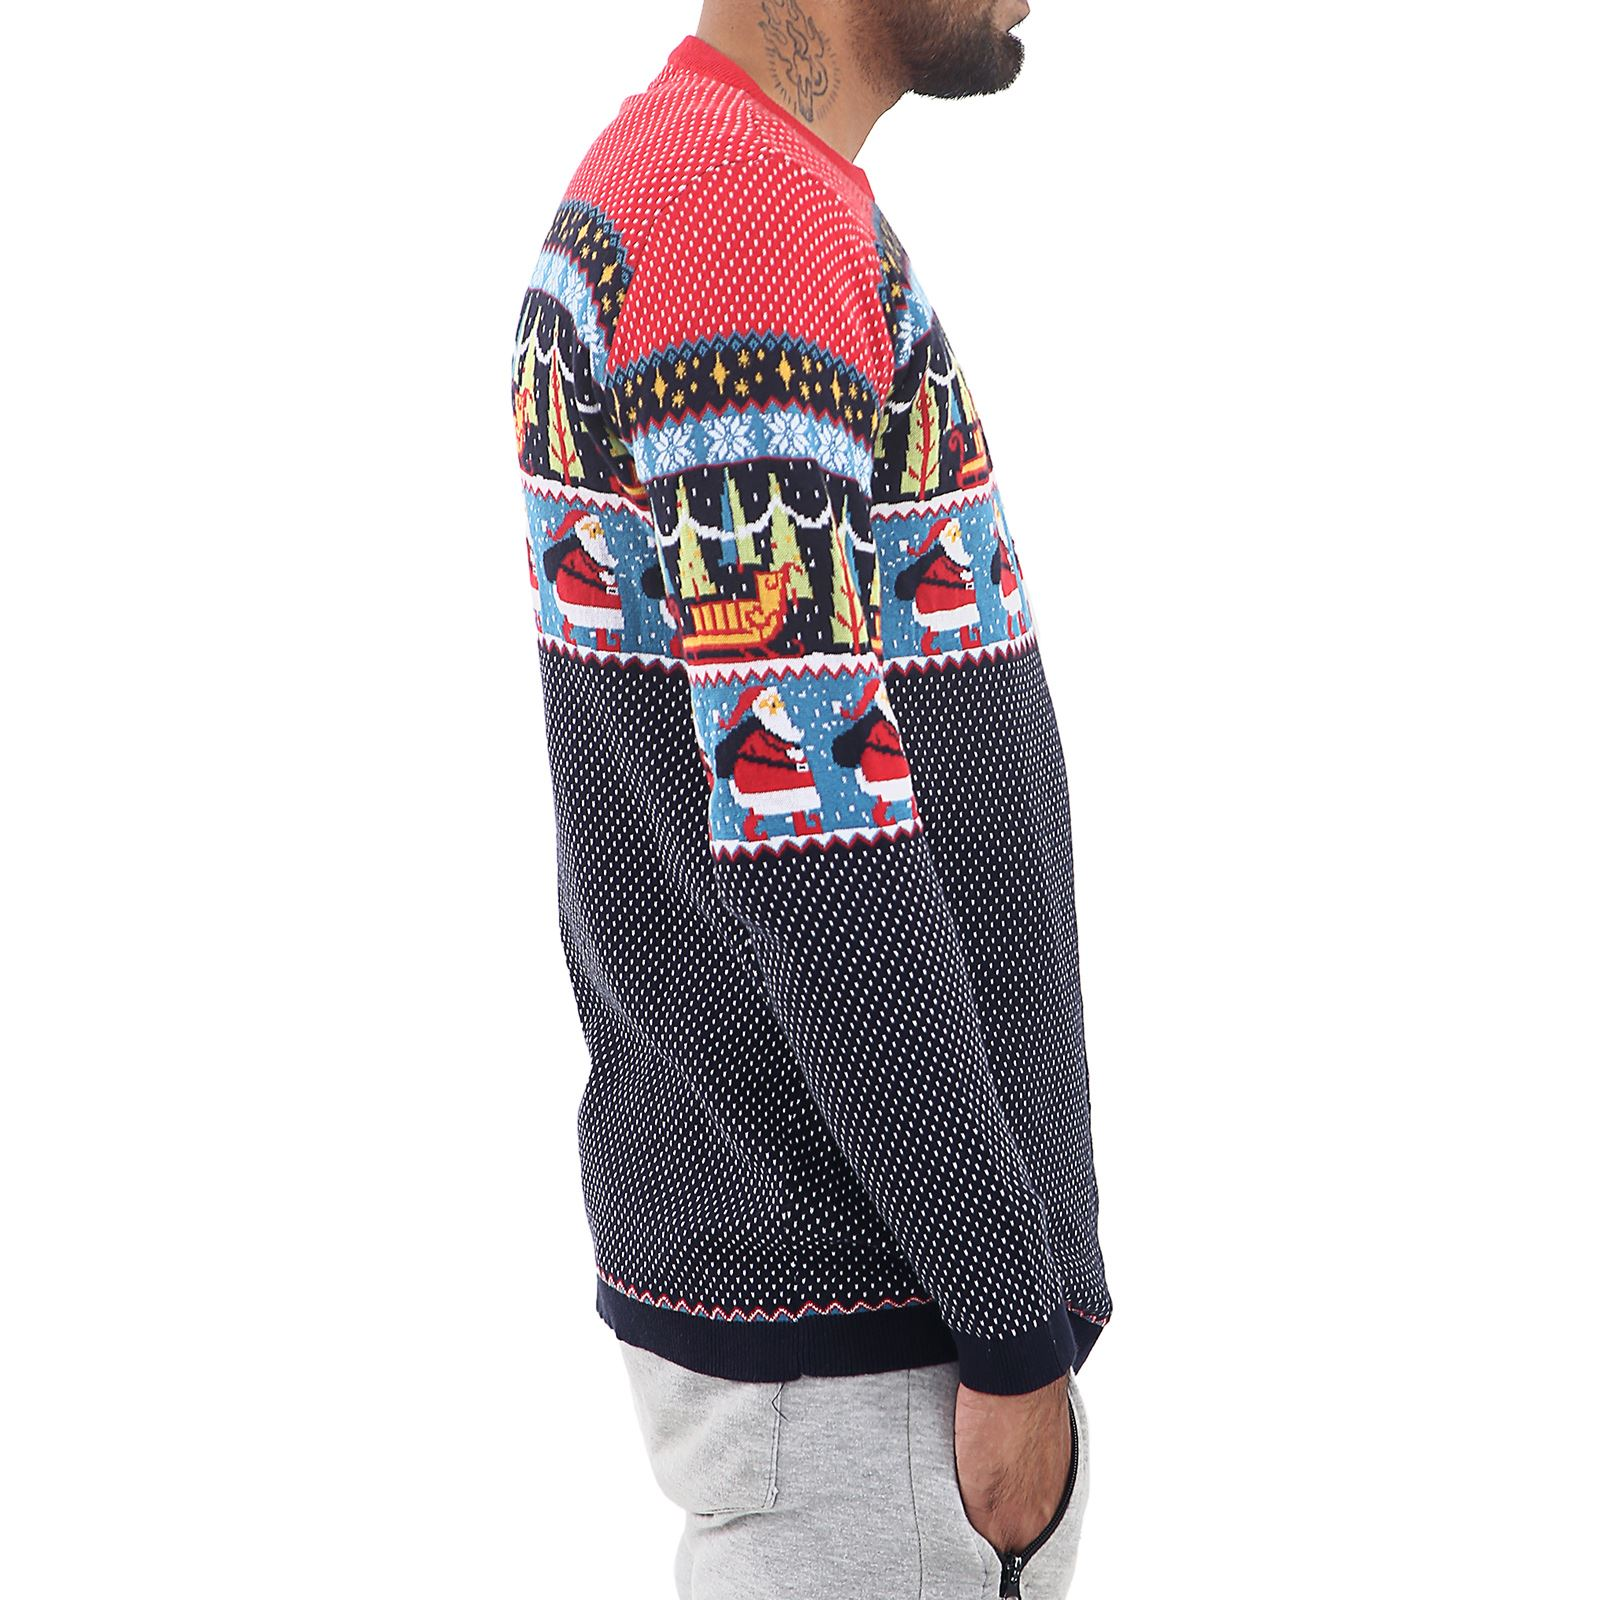 Mens-Ladies-Ex-Store-Matching-Christmas-Sweater-Jumper-Sweatshirt-Xmas-His-Hers thumbnail 12